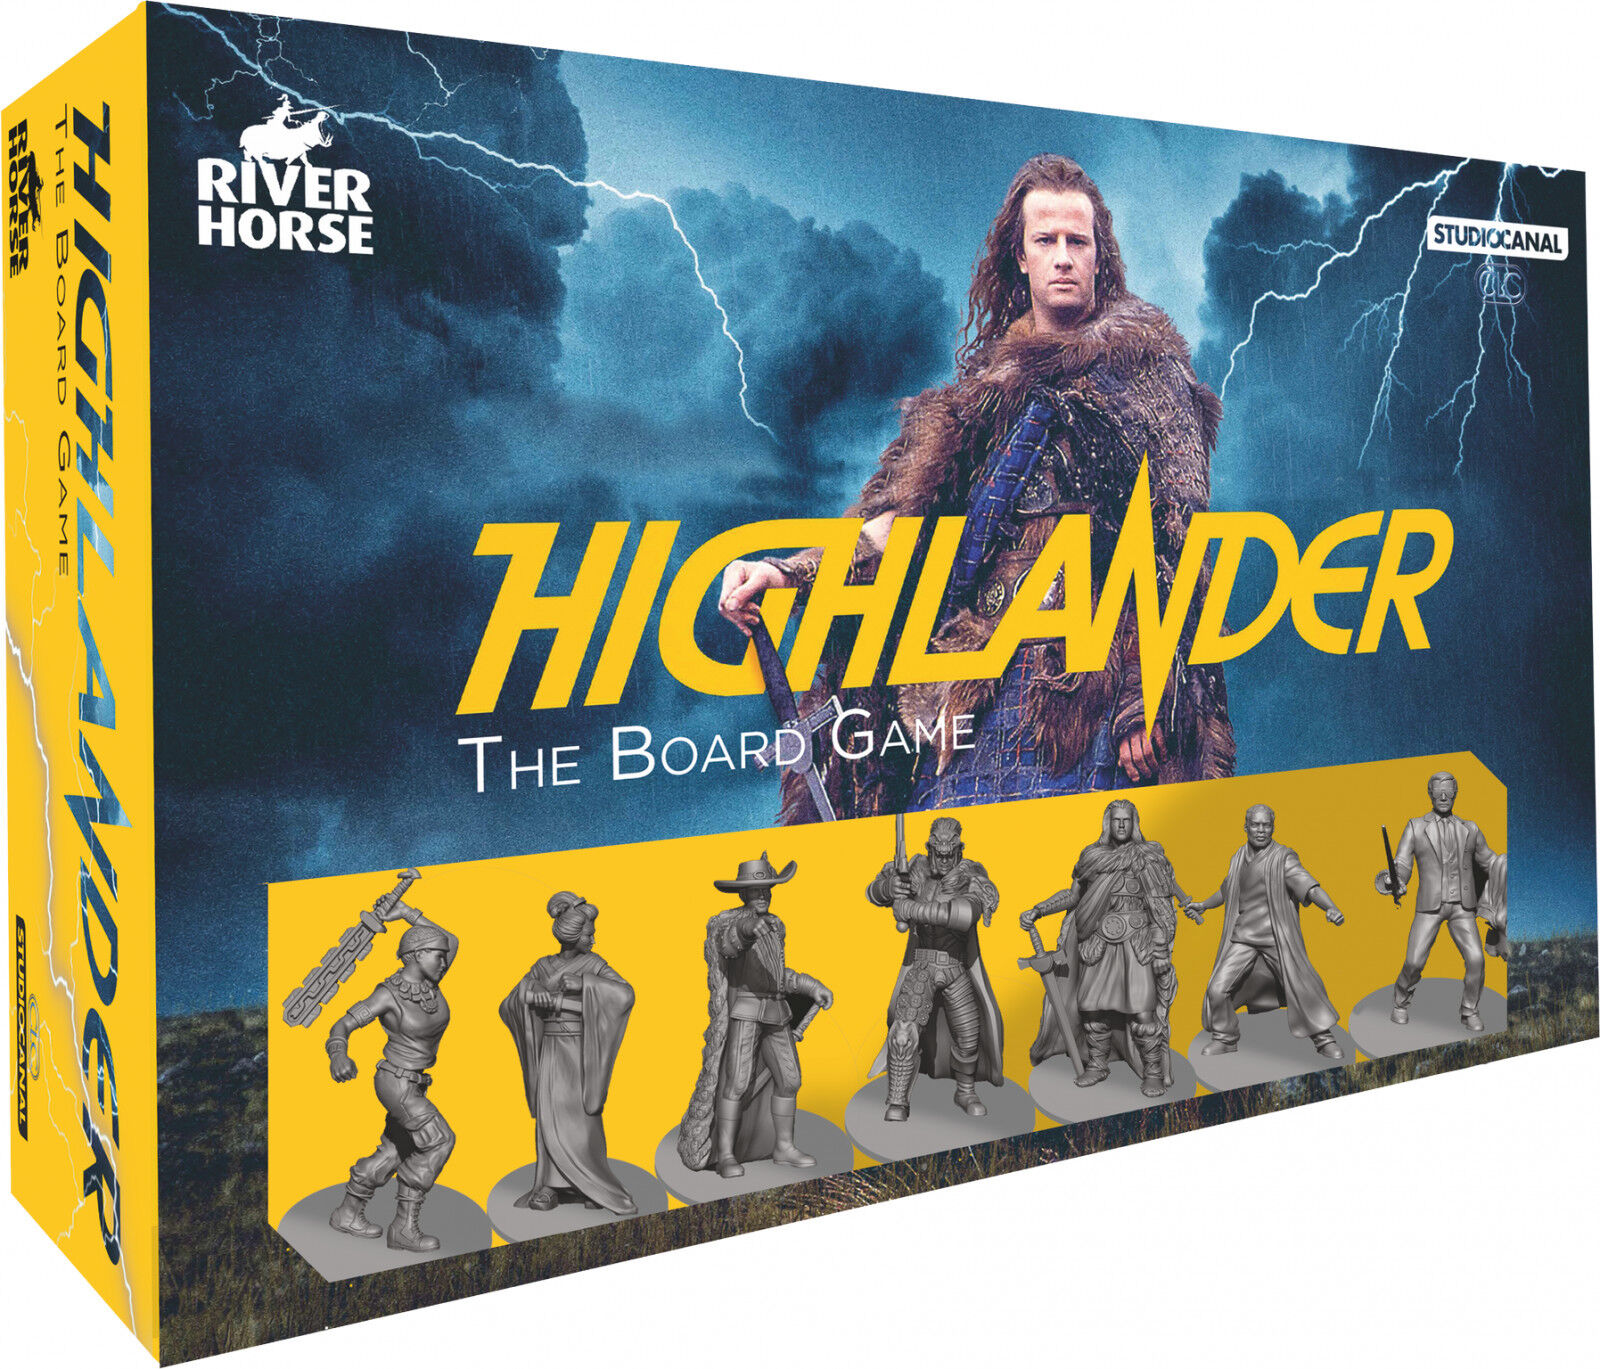 Highlander The Board Game  - BRAND NEW